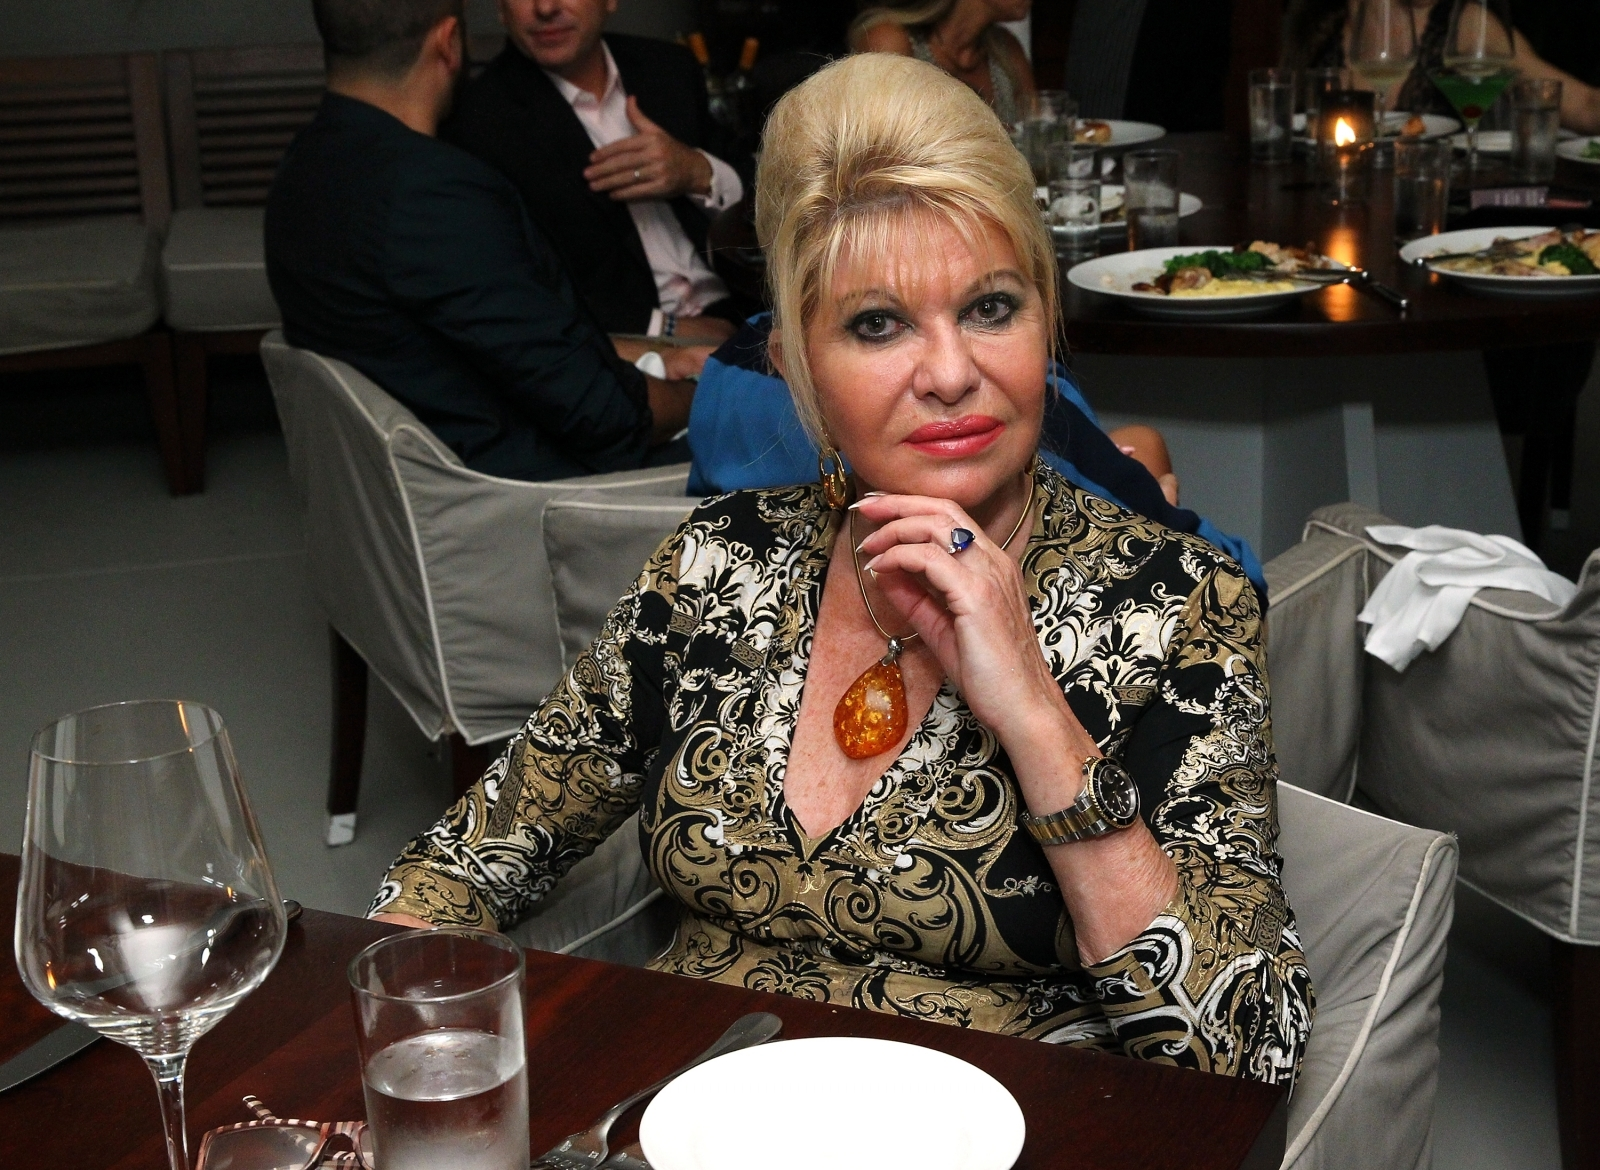 In new book, Ivana Trump writes of contentment